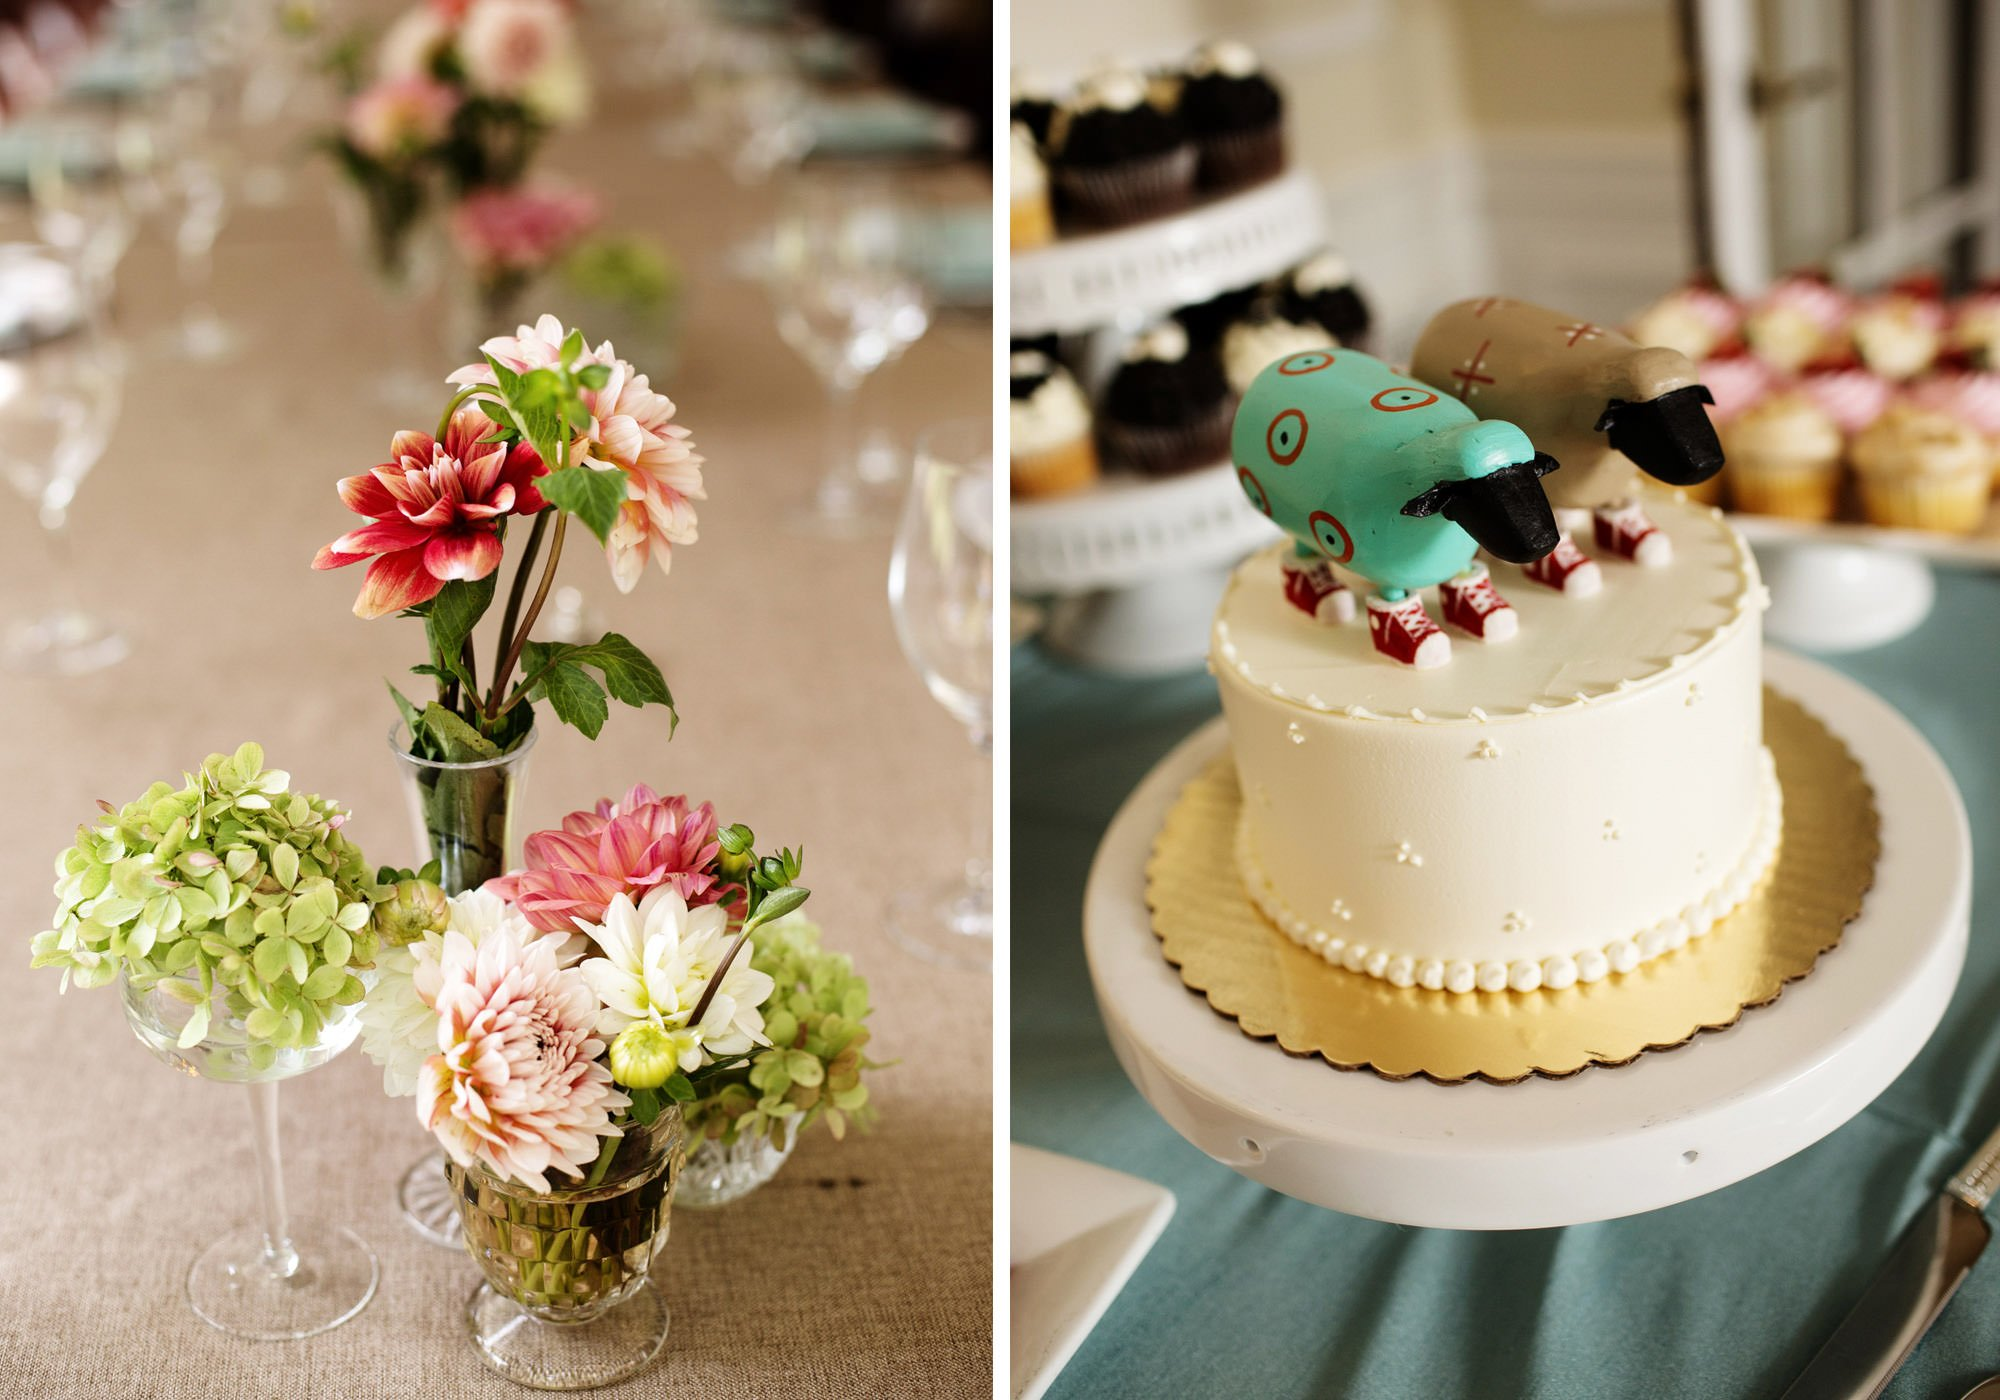 Details of the wedding cake and flower arrangements.